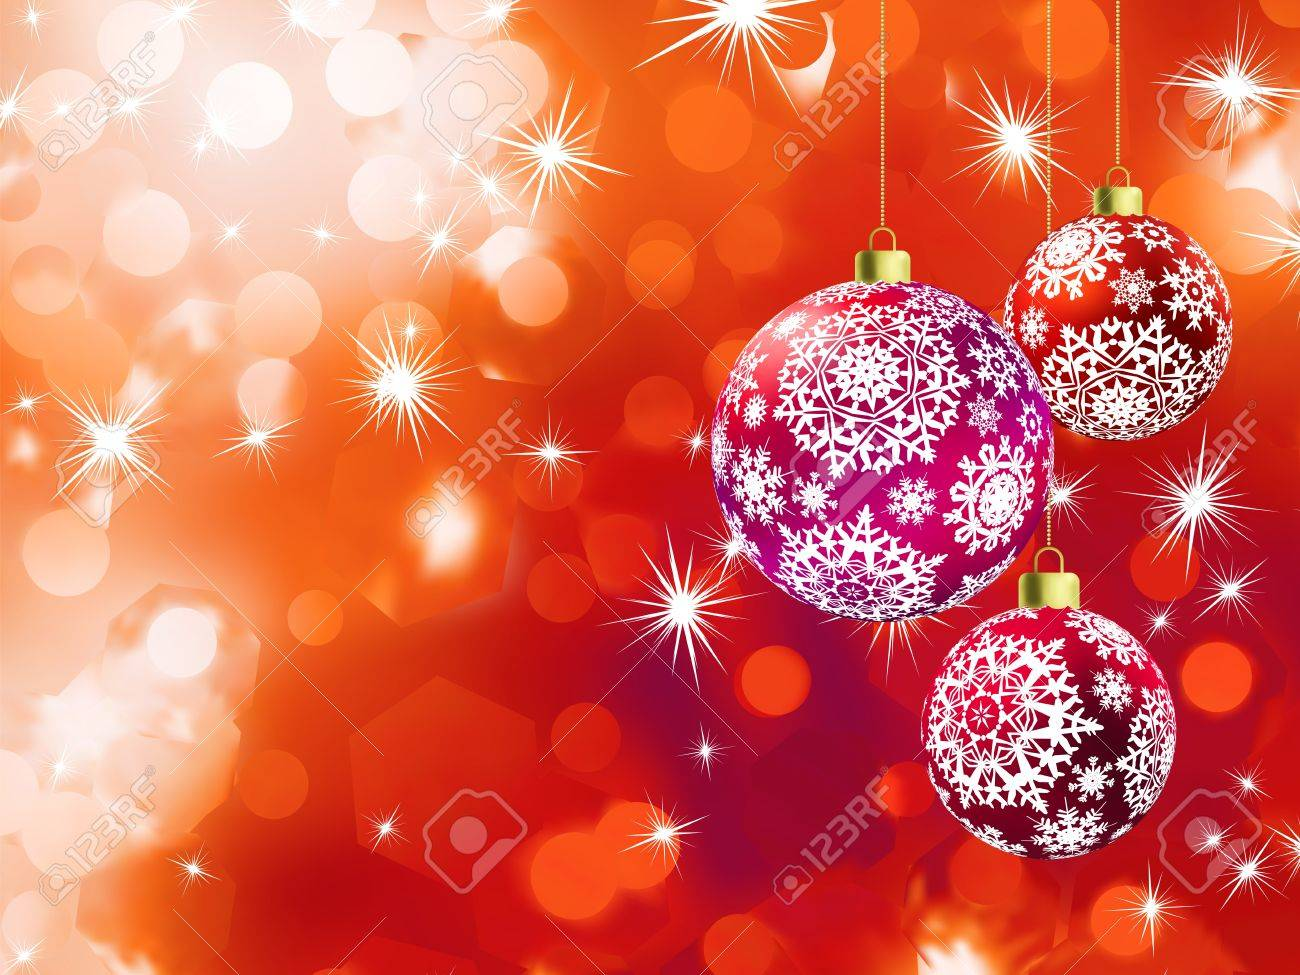 orange bokeh of christmas lights with beautiful sparkling and diffusion stock vector 17047301 - Sparkling Christmas Lights